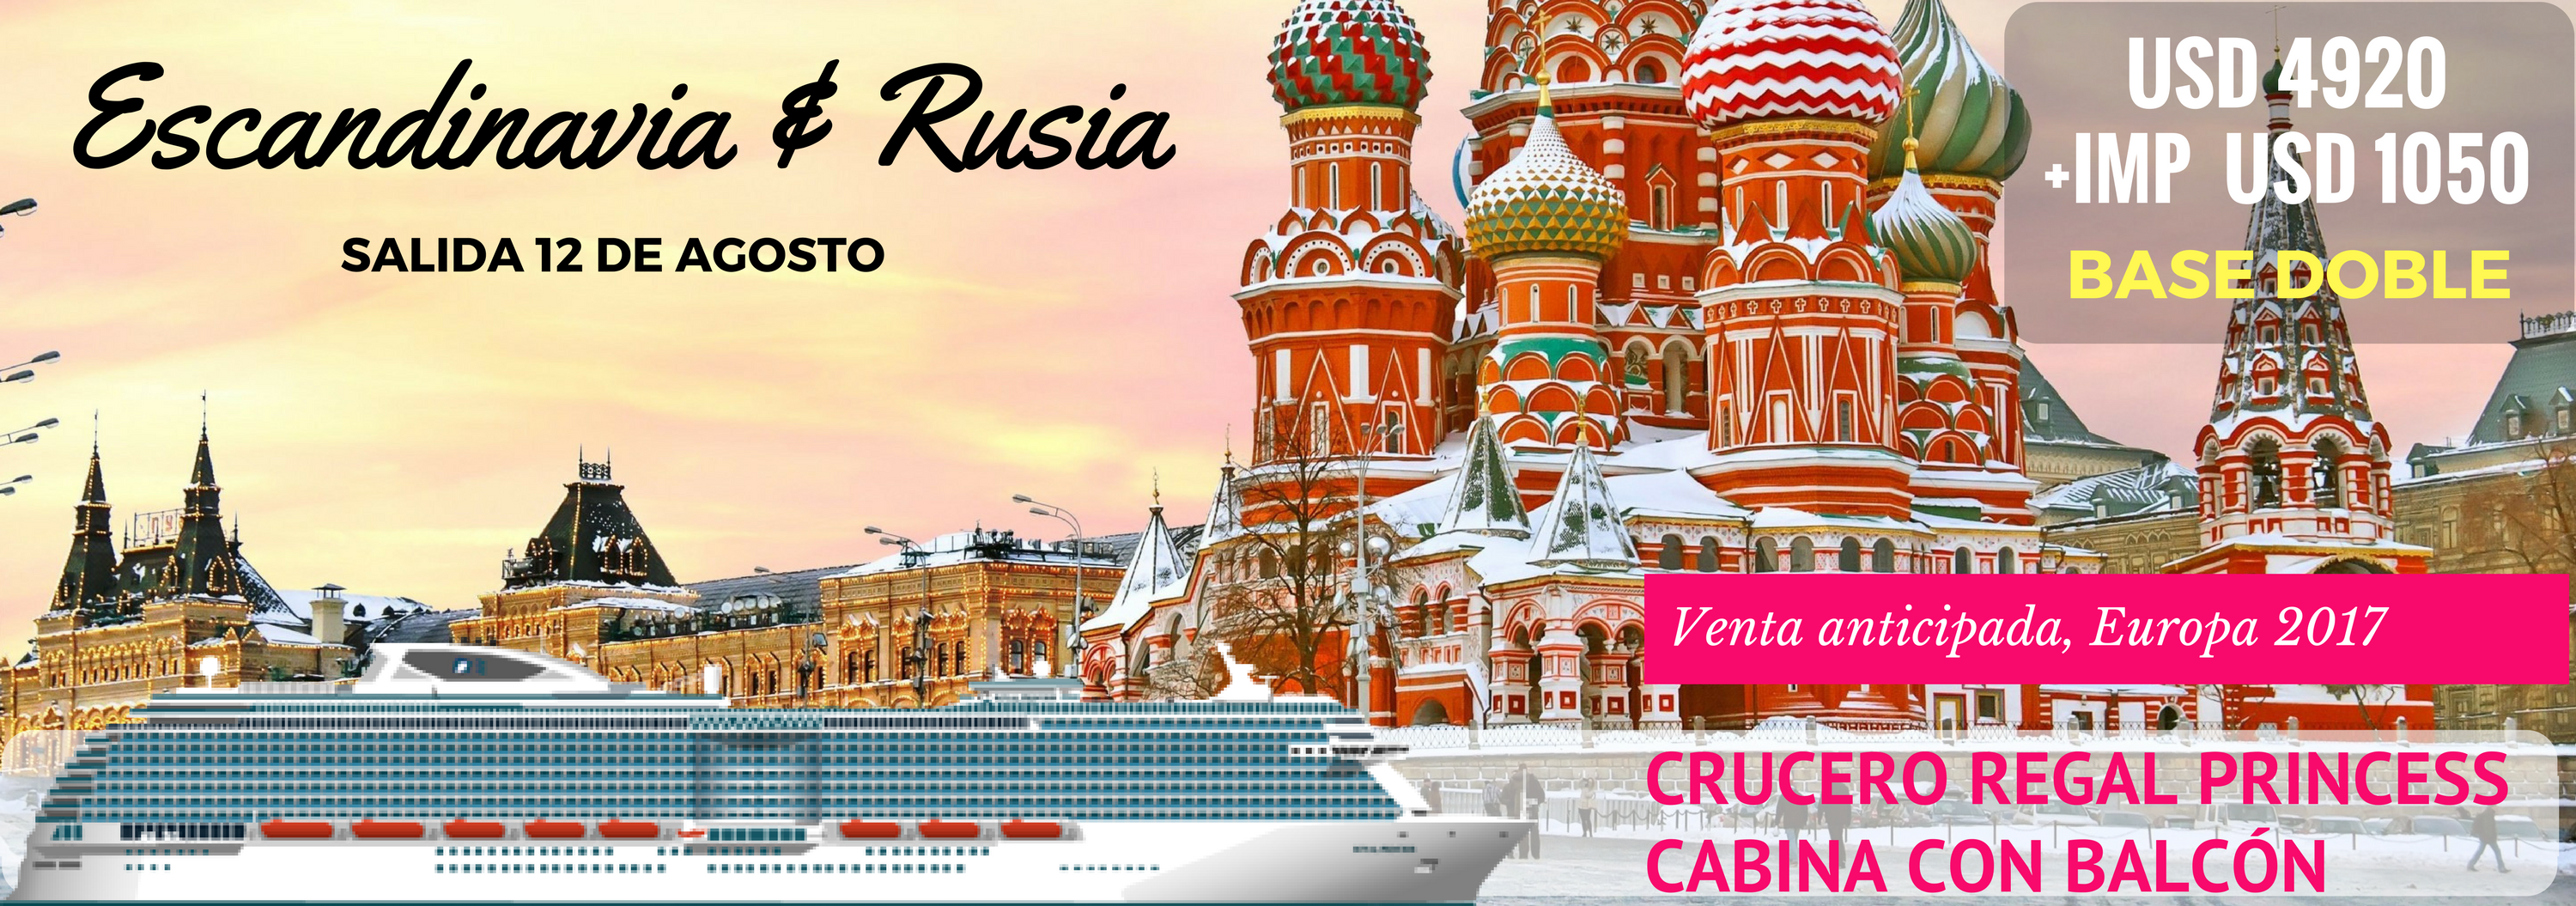 Escandinavia y Rusia con crucero Regal Princess